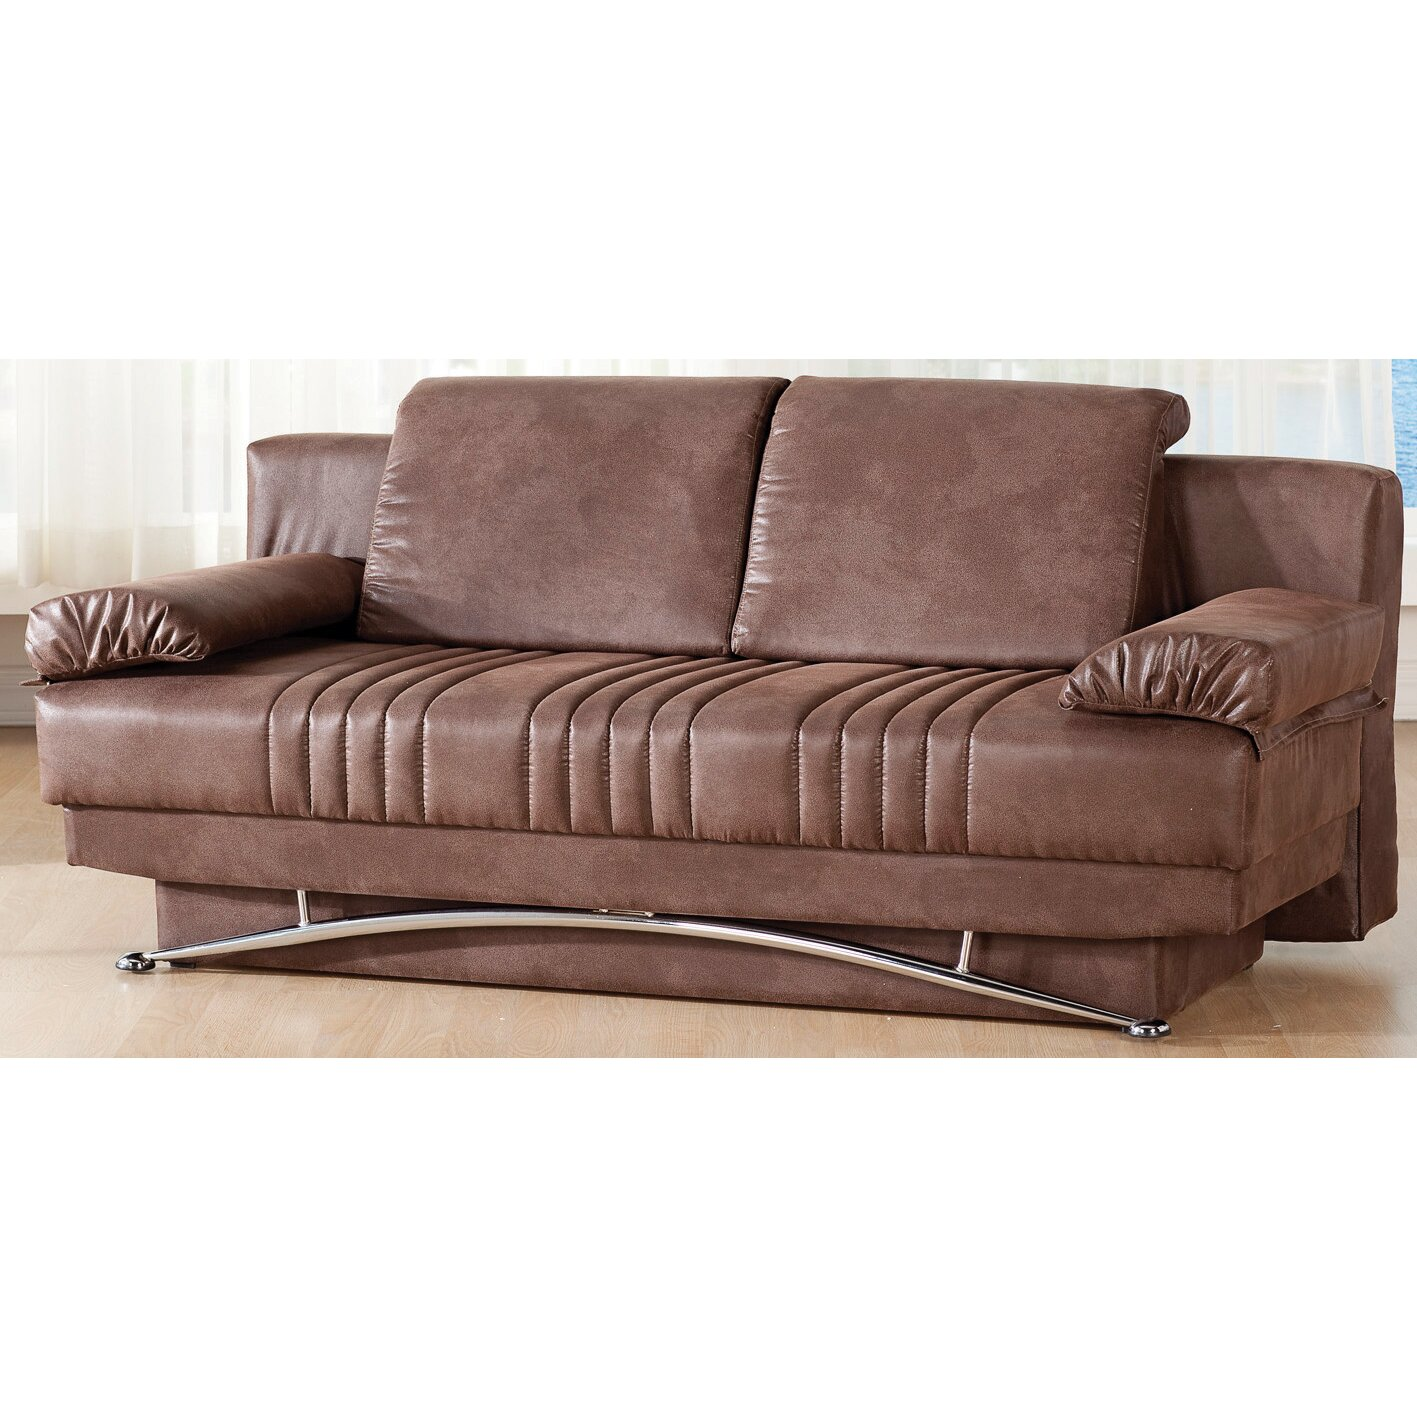 Istikbal Fantasy Sleeper Sofa Reviews Wayfair